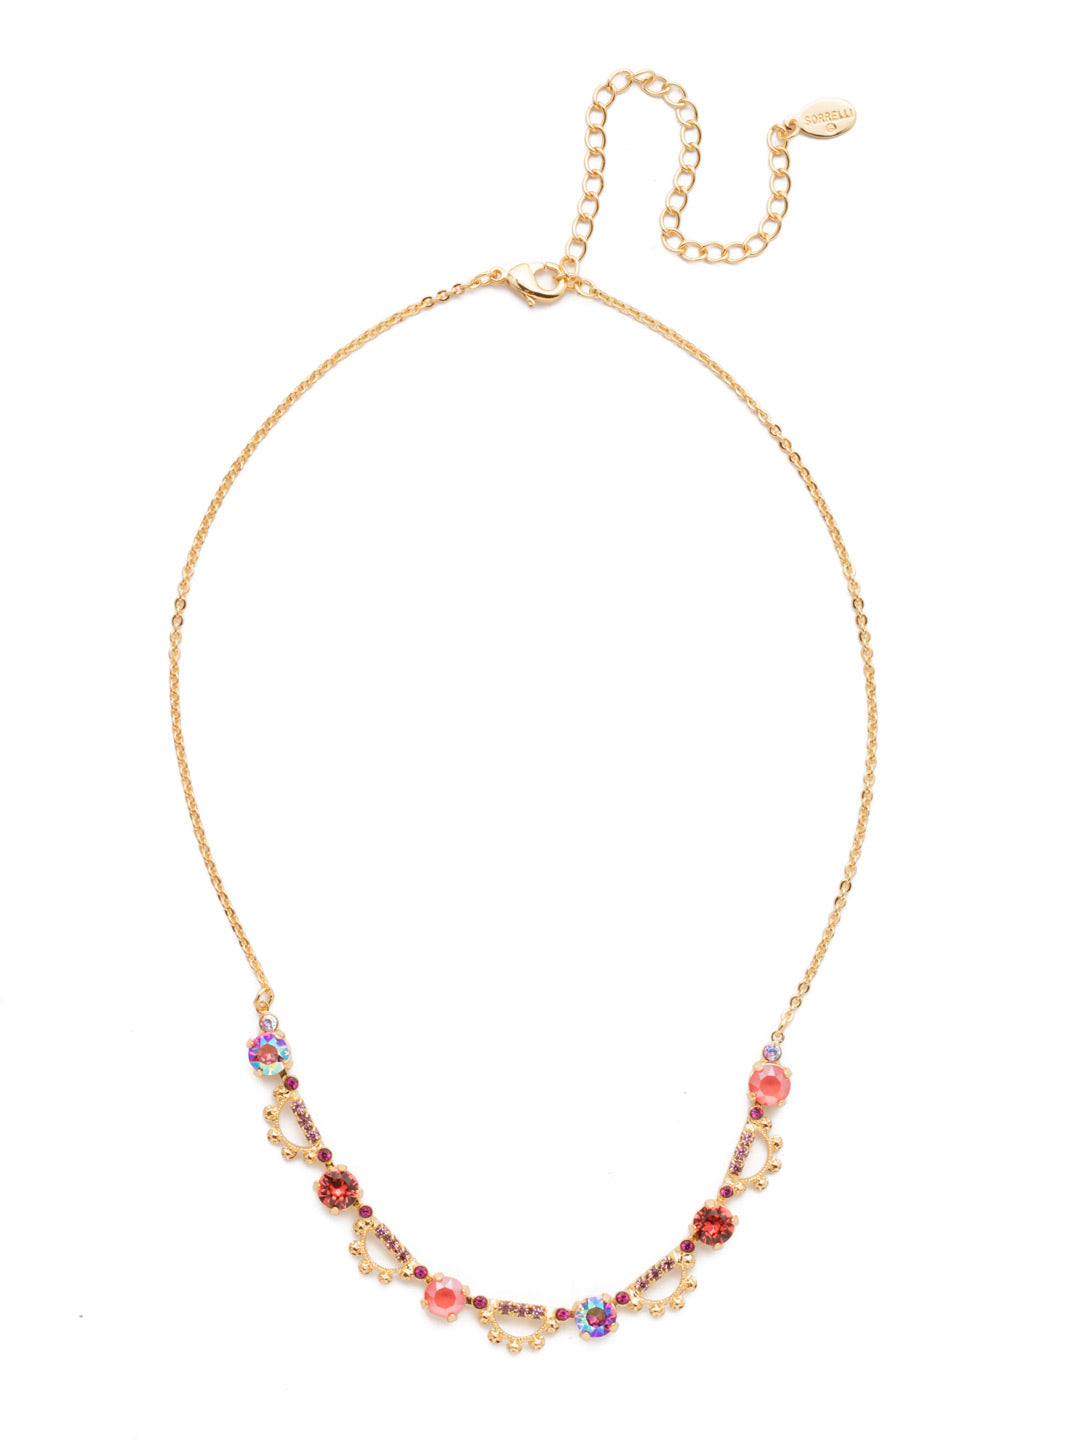 Luciana Tennis Necklace - NES19BGBGA